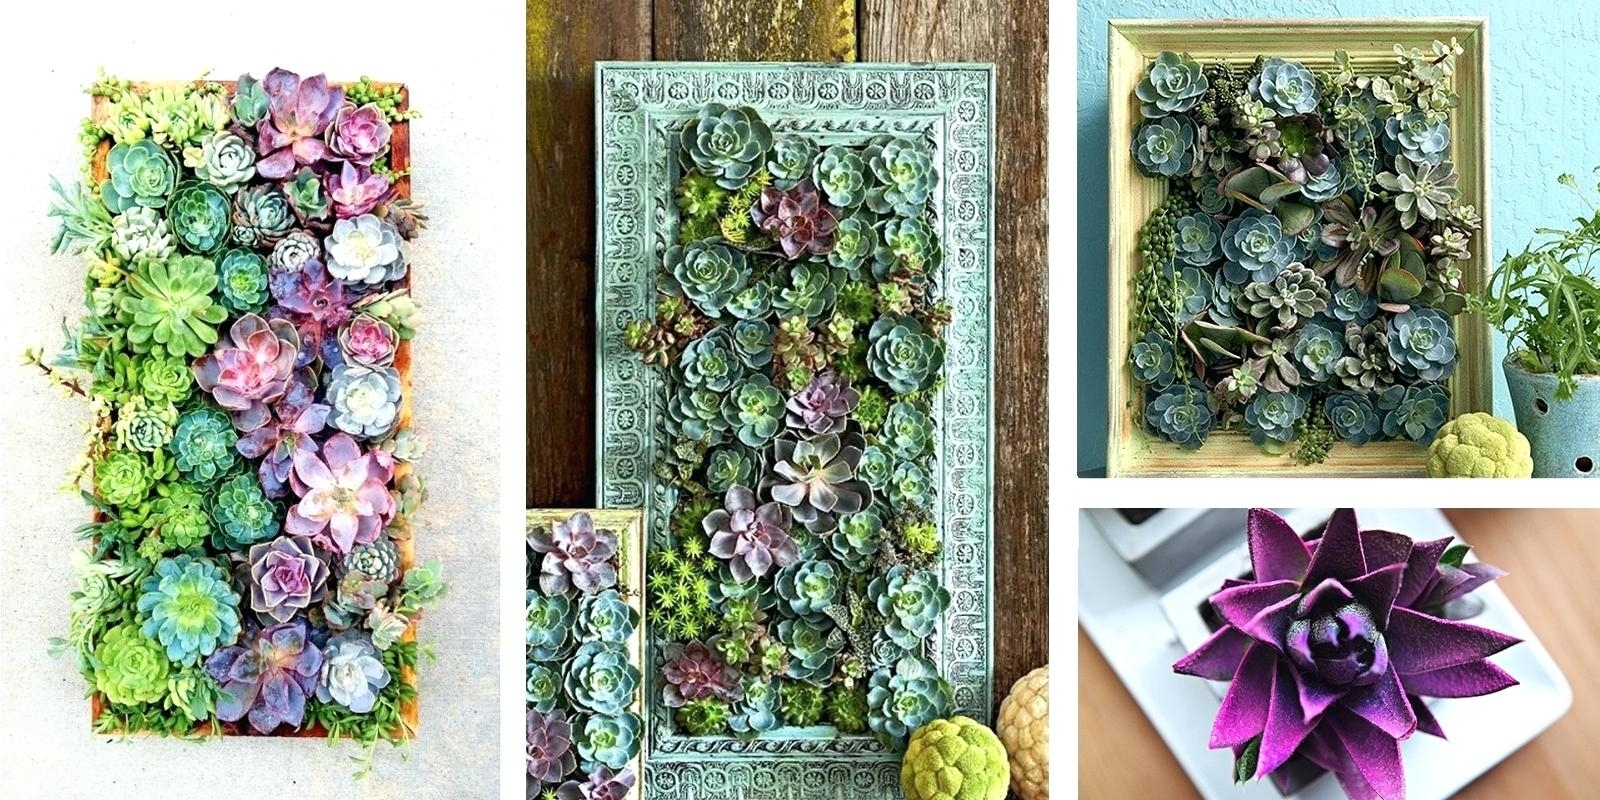 Succulent Wall Hanging Art Kit Decor Diy – Restorethelakes For Latest Succulent Wall Art (Gallery 14 of 20)